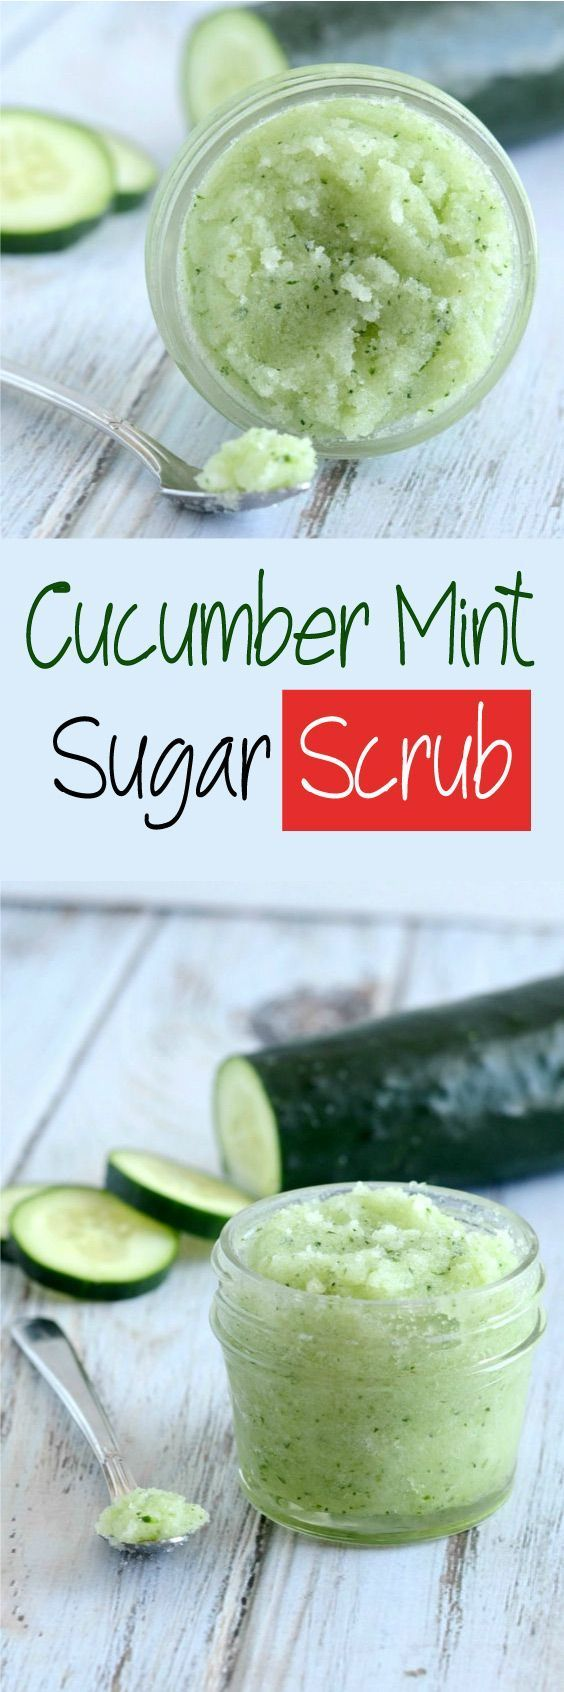 Cucumber Mint Sugar Scrub – Soften up that dry flaky skin with this all natura...